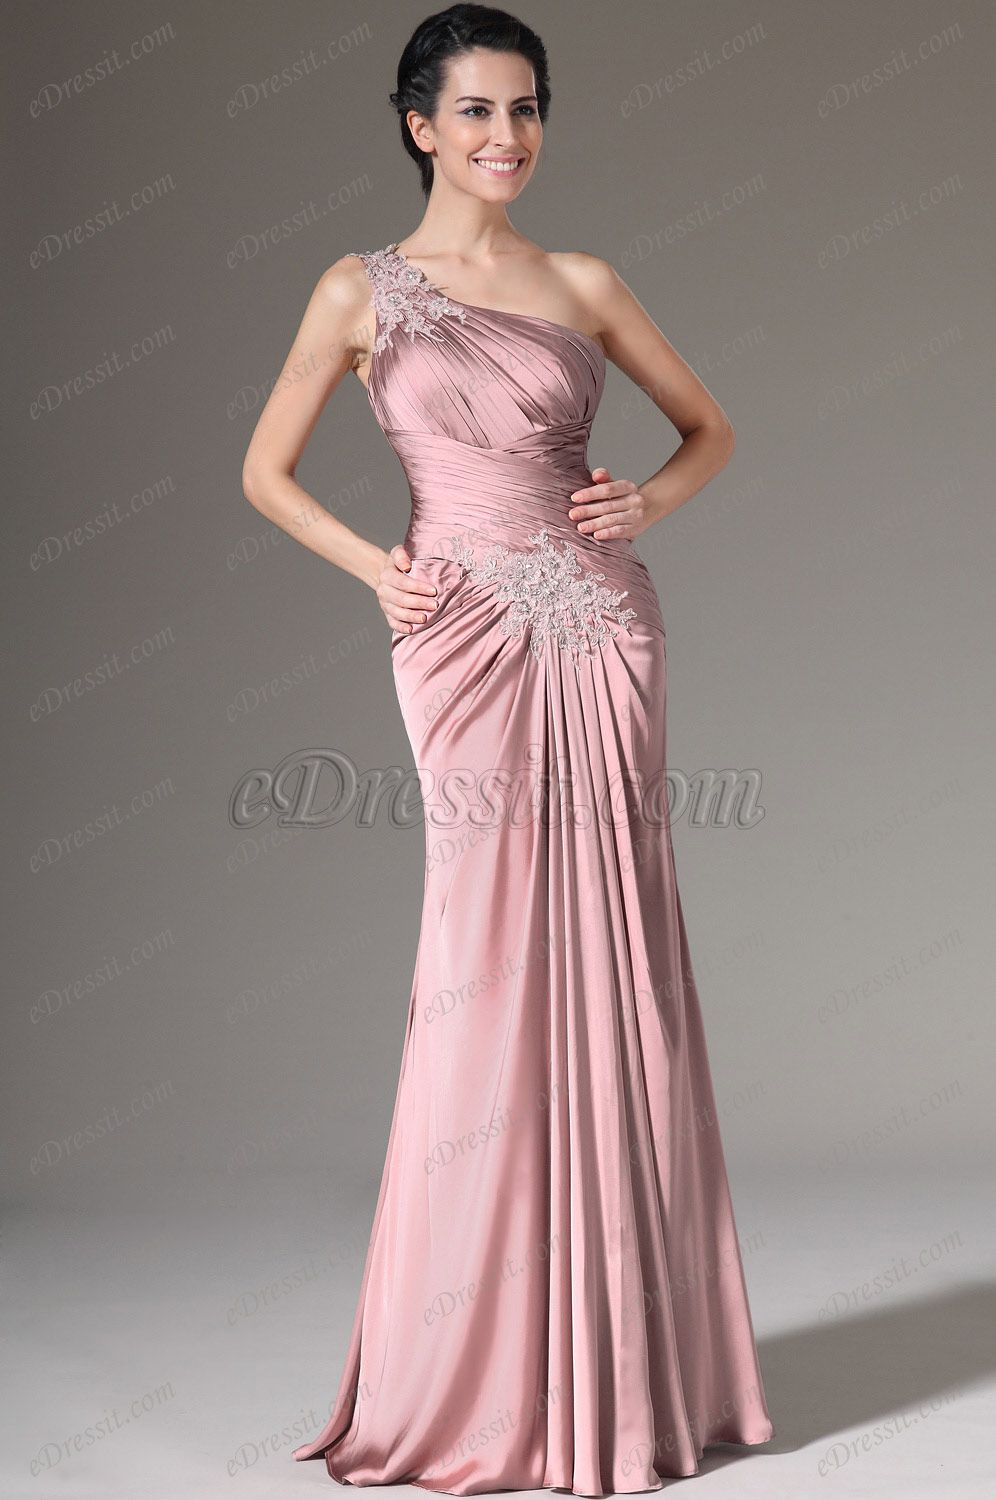 eDressit 2014 New Pink Crepe Satin Bolero 2 Pieces Formal Gown ...